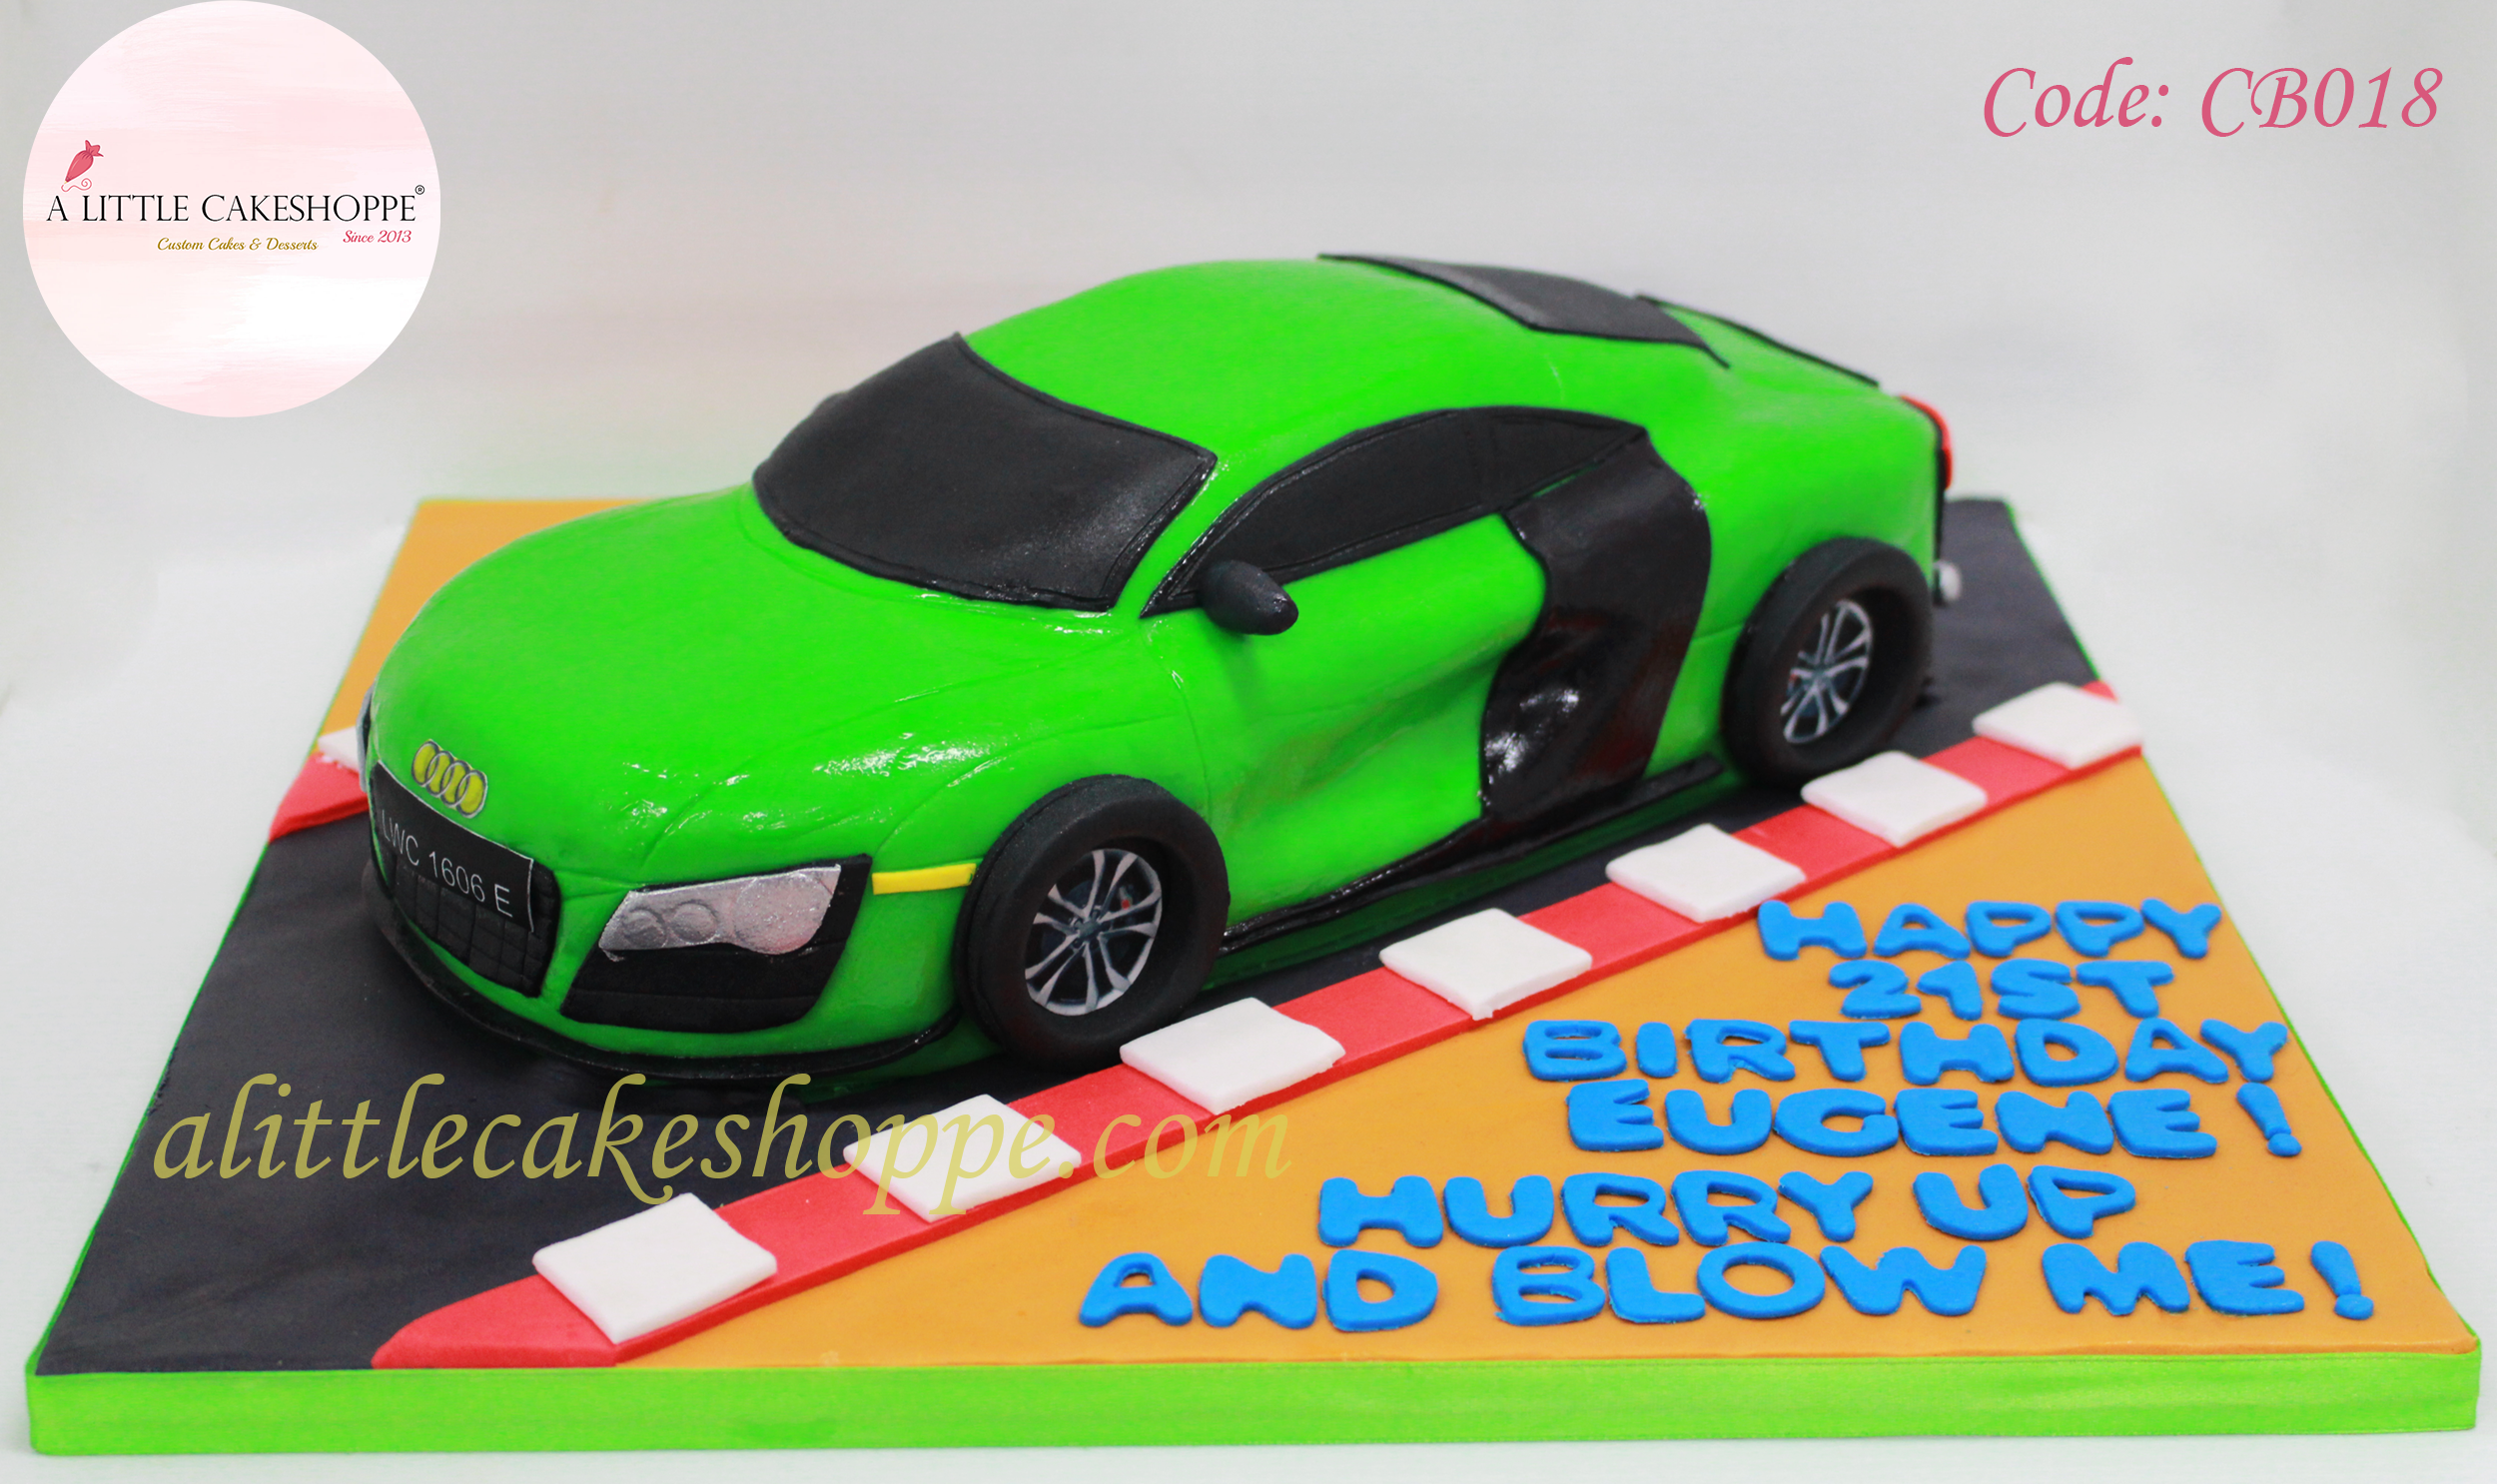 Best Customised Cake Shop Singapore custom cake 2D 3D birthday cake cupcakes desserts wedding corporate events anniversary 1st birthday 21st birthday fondant fresh cream buttercream cakes alittlecakeshoppe a little cake shoppe compliments review singapore bakers SG cake shop cakeshop ah beng who bakes car audi